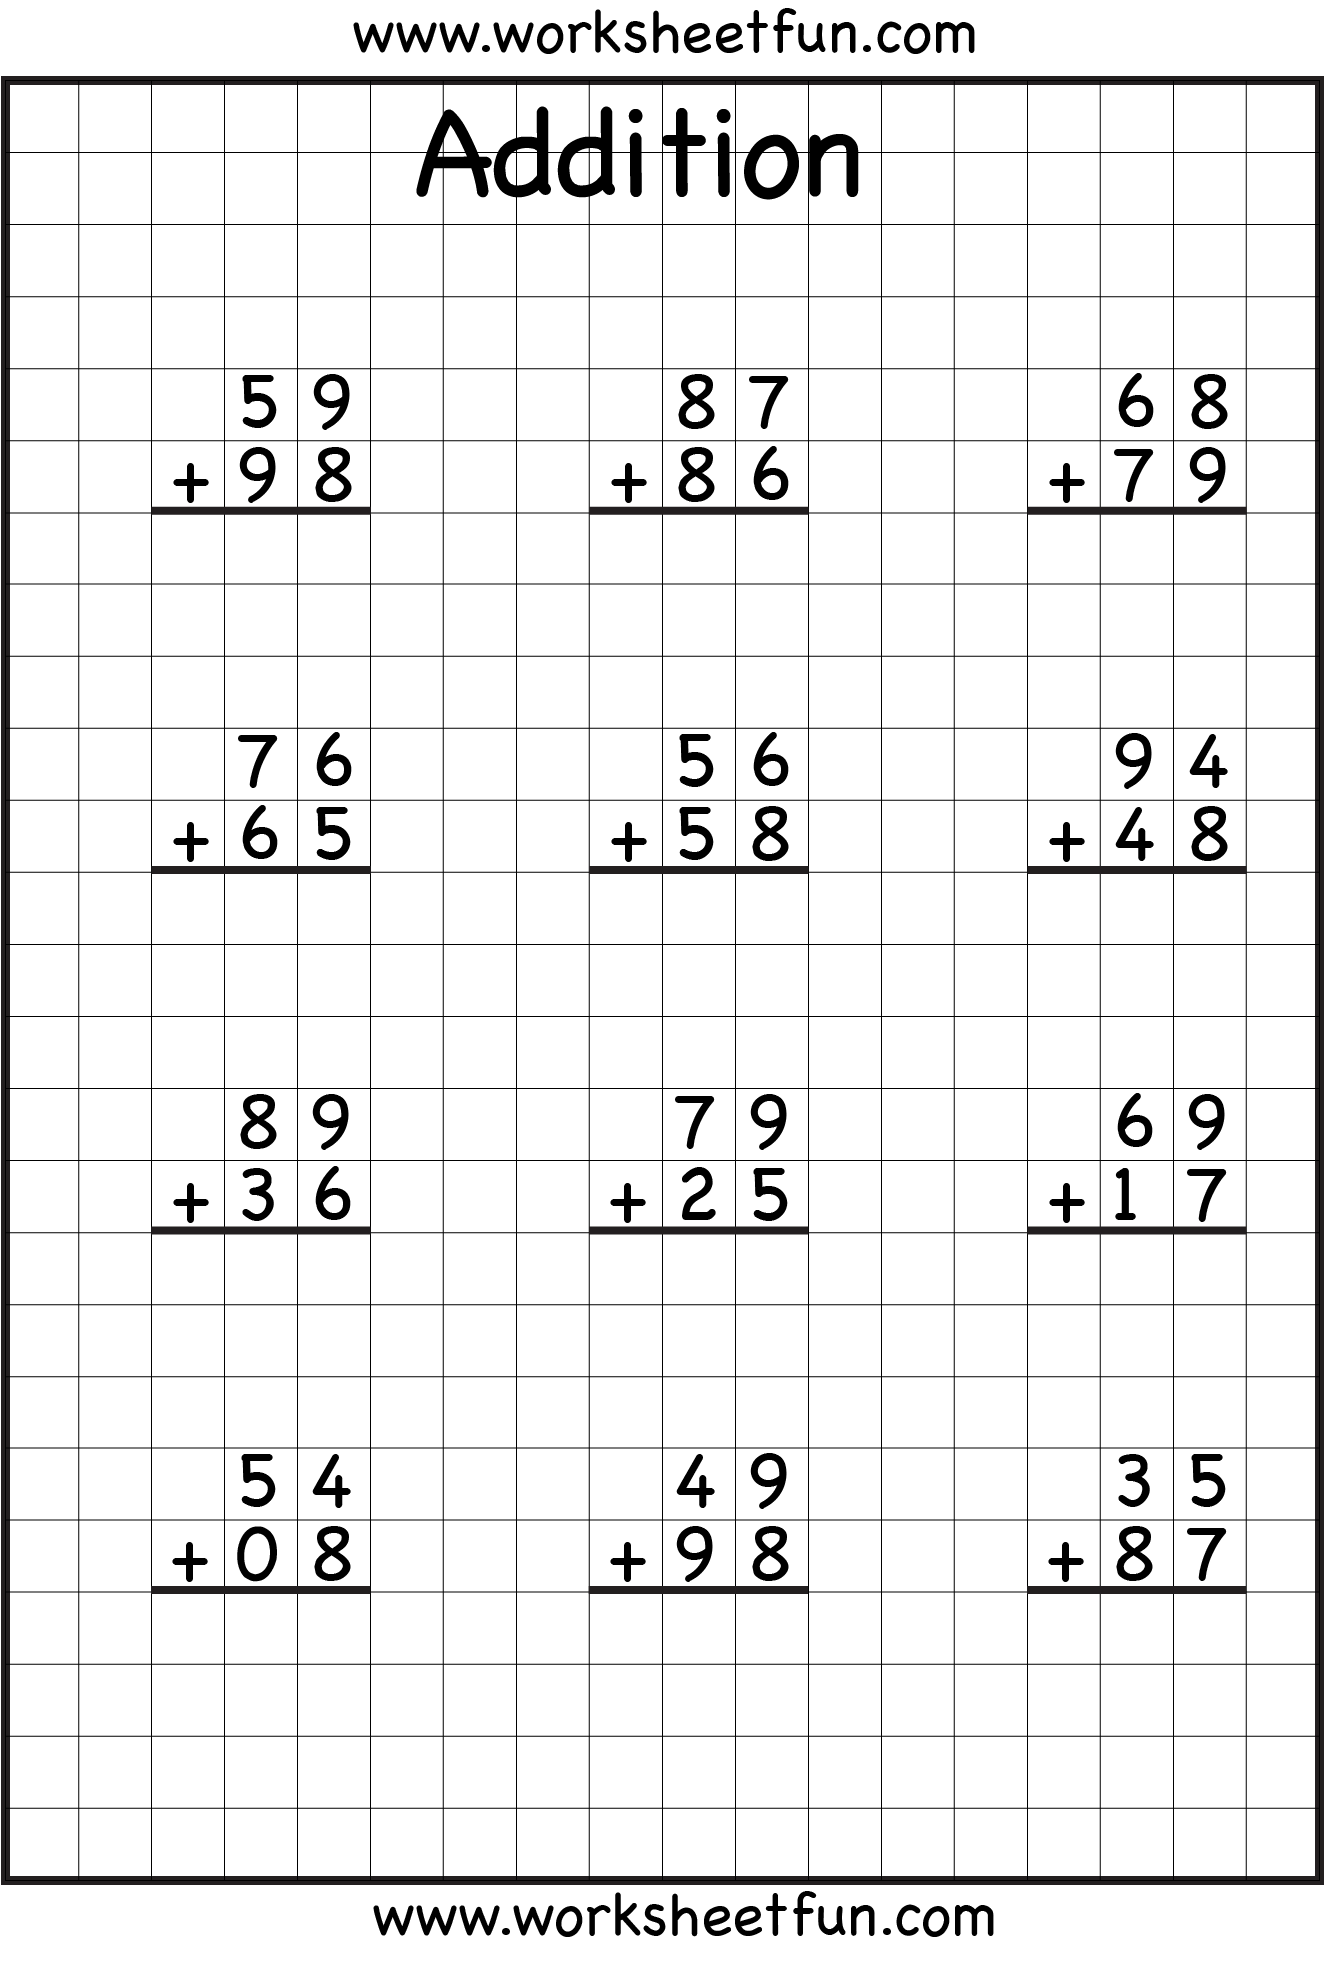 addition regrouping Free math worksheets, Math